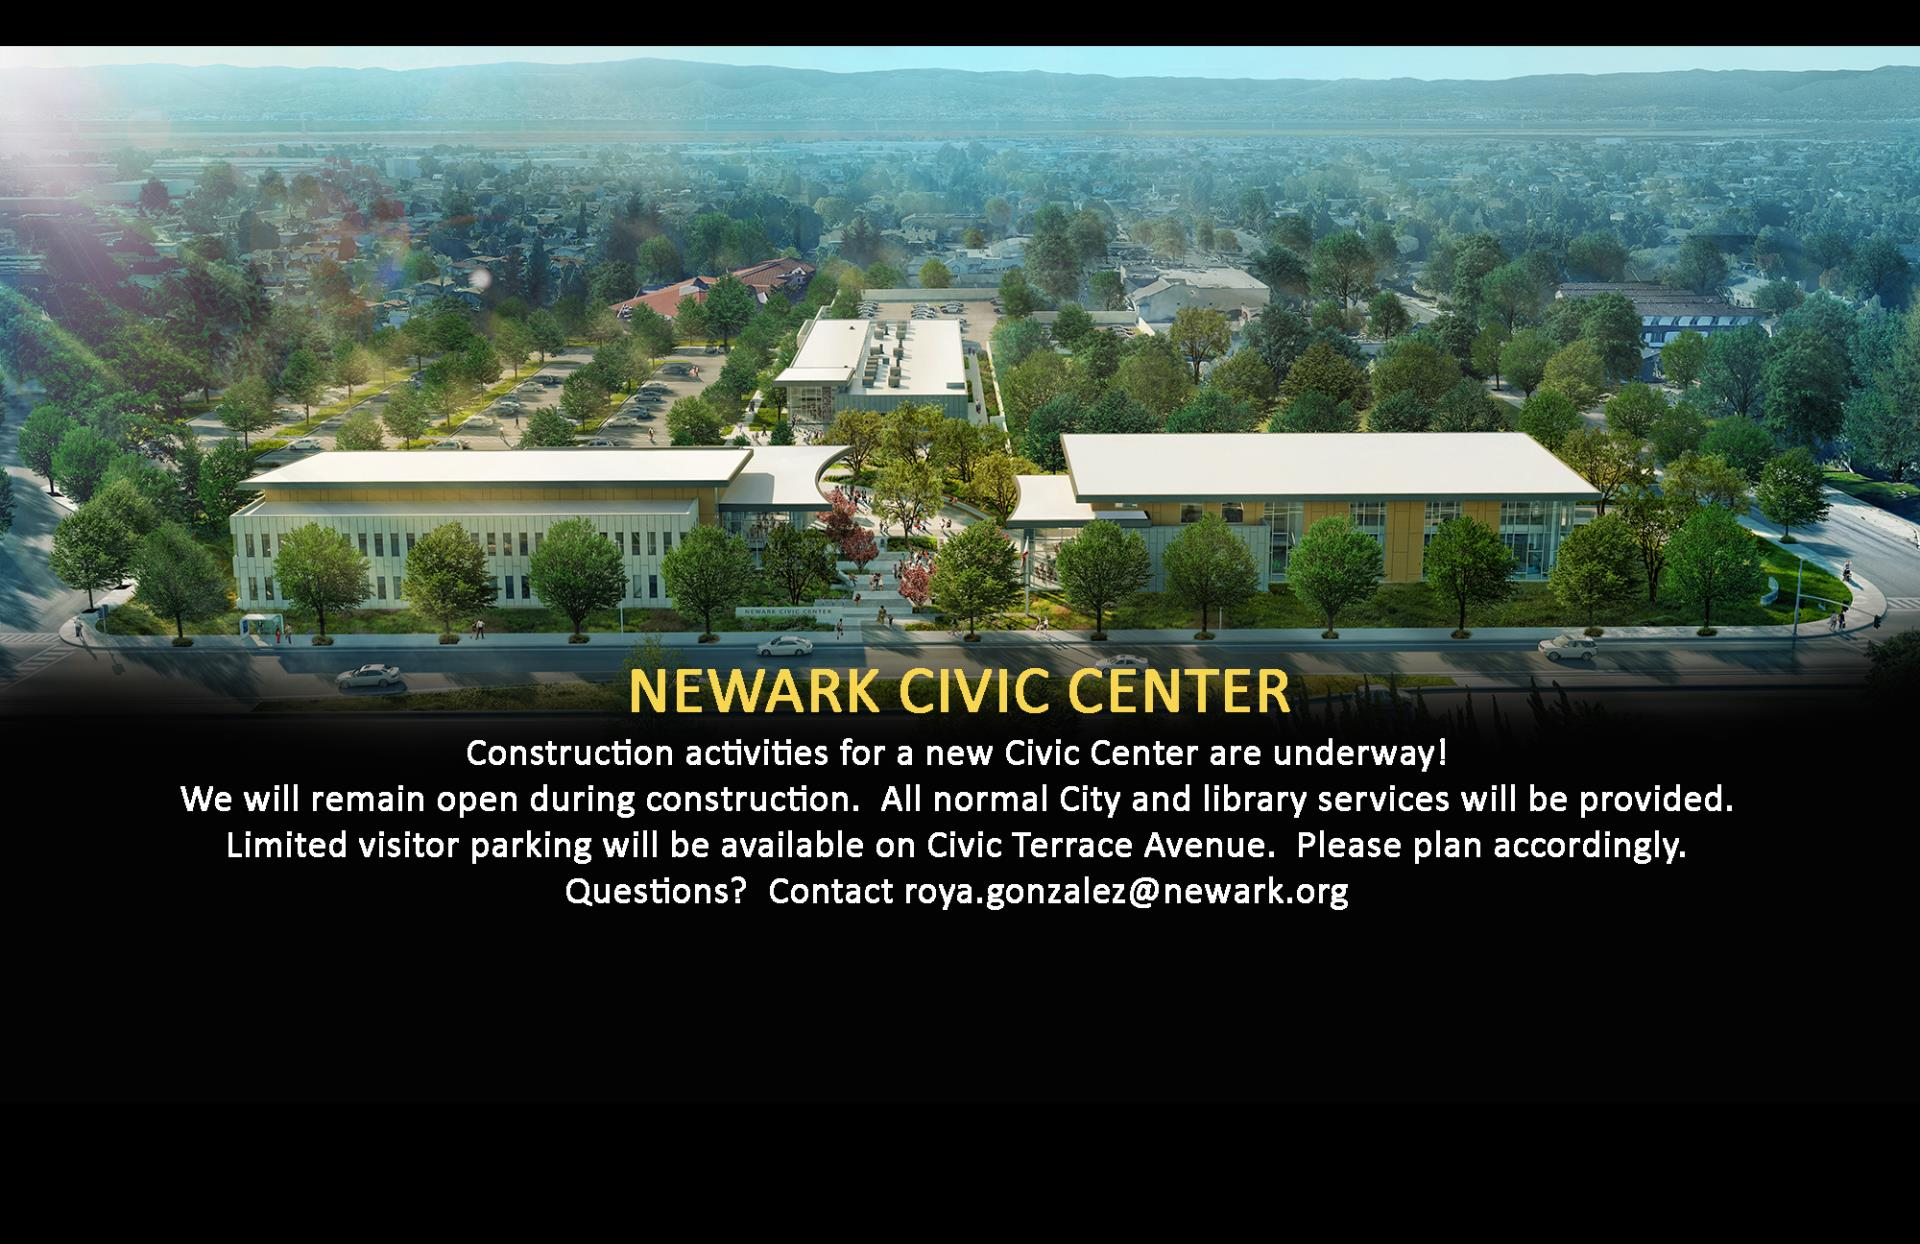 Civic Center Rendering6